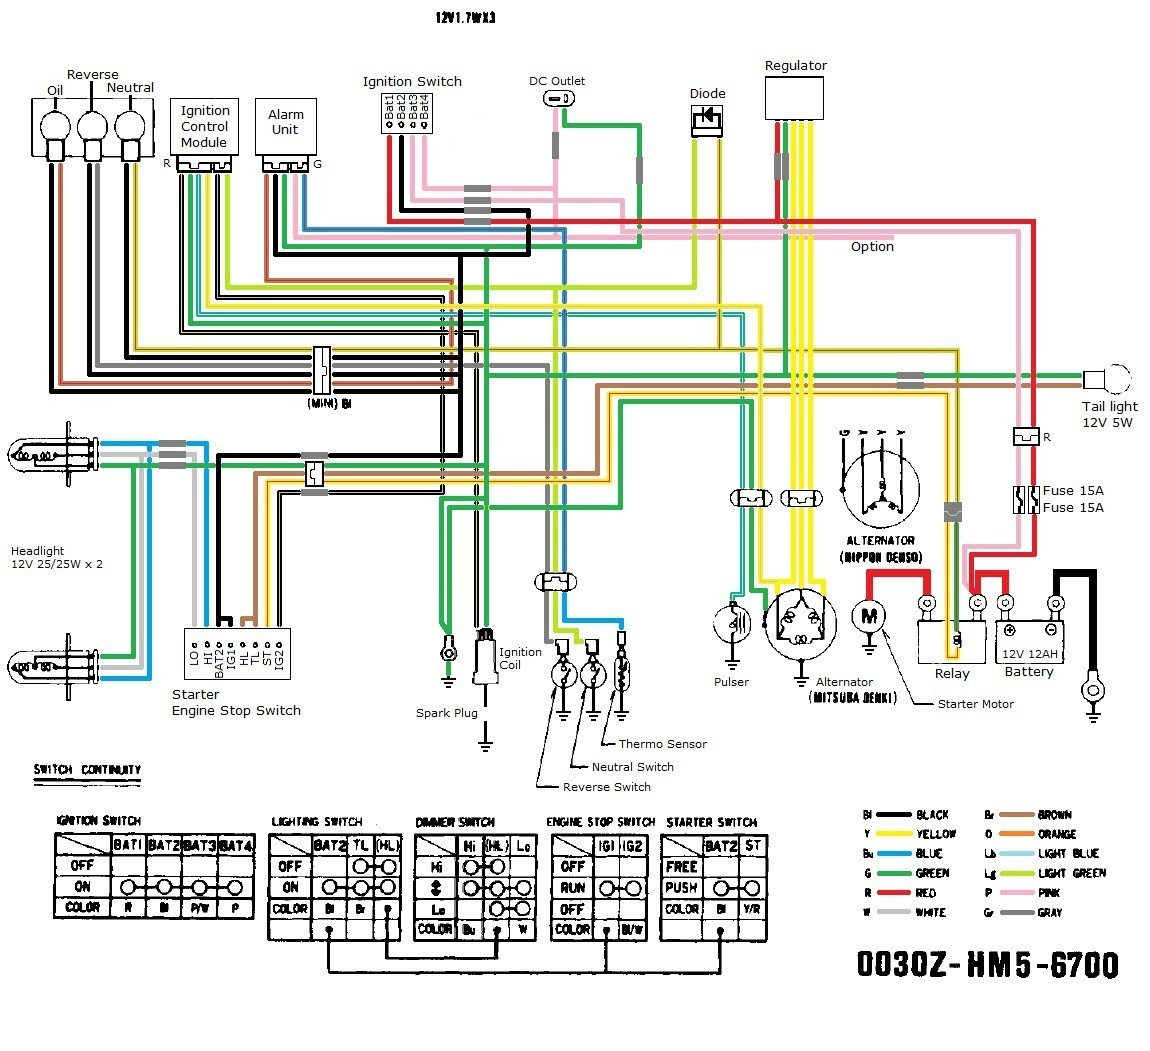 Chinese Quad Electrical Diagram Chinese atv Wiring Schematic 110cc Of Chinese Quad Electrical Diagram